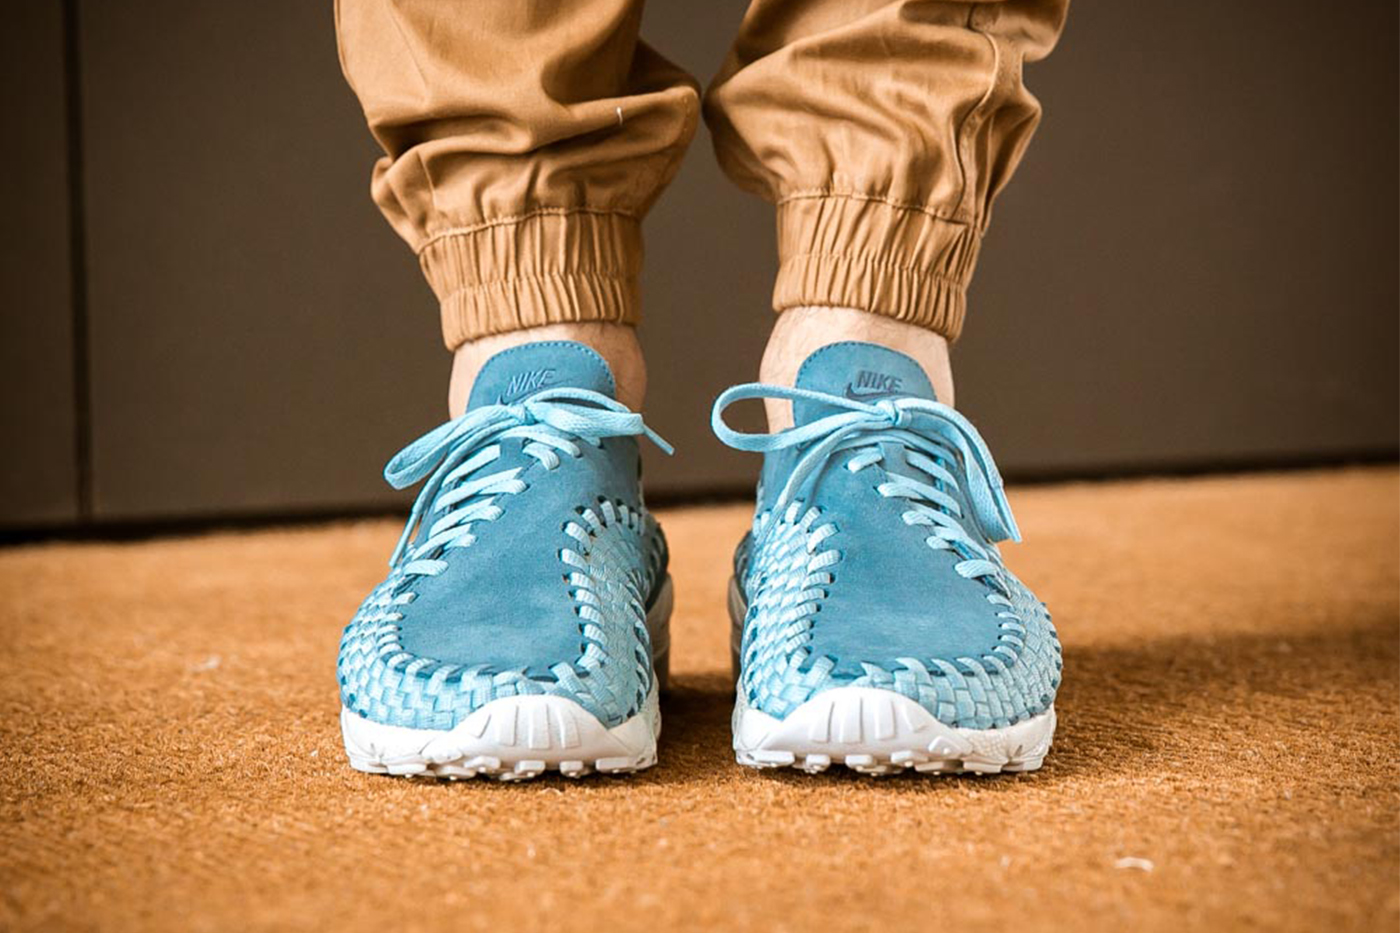 Nike Air Footscape Woven NM in Smokey